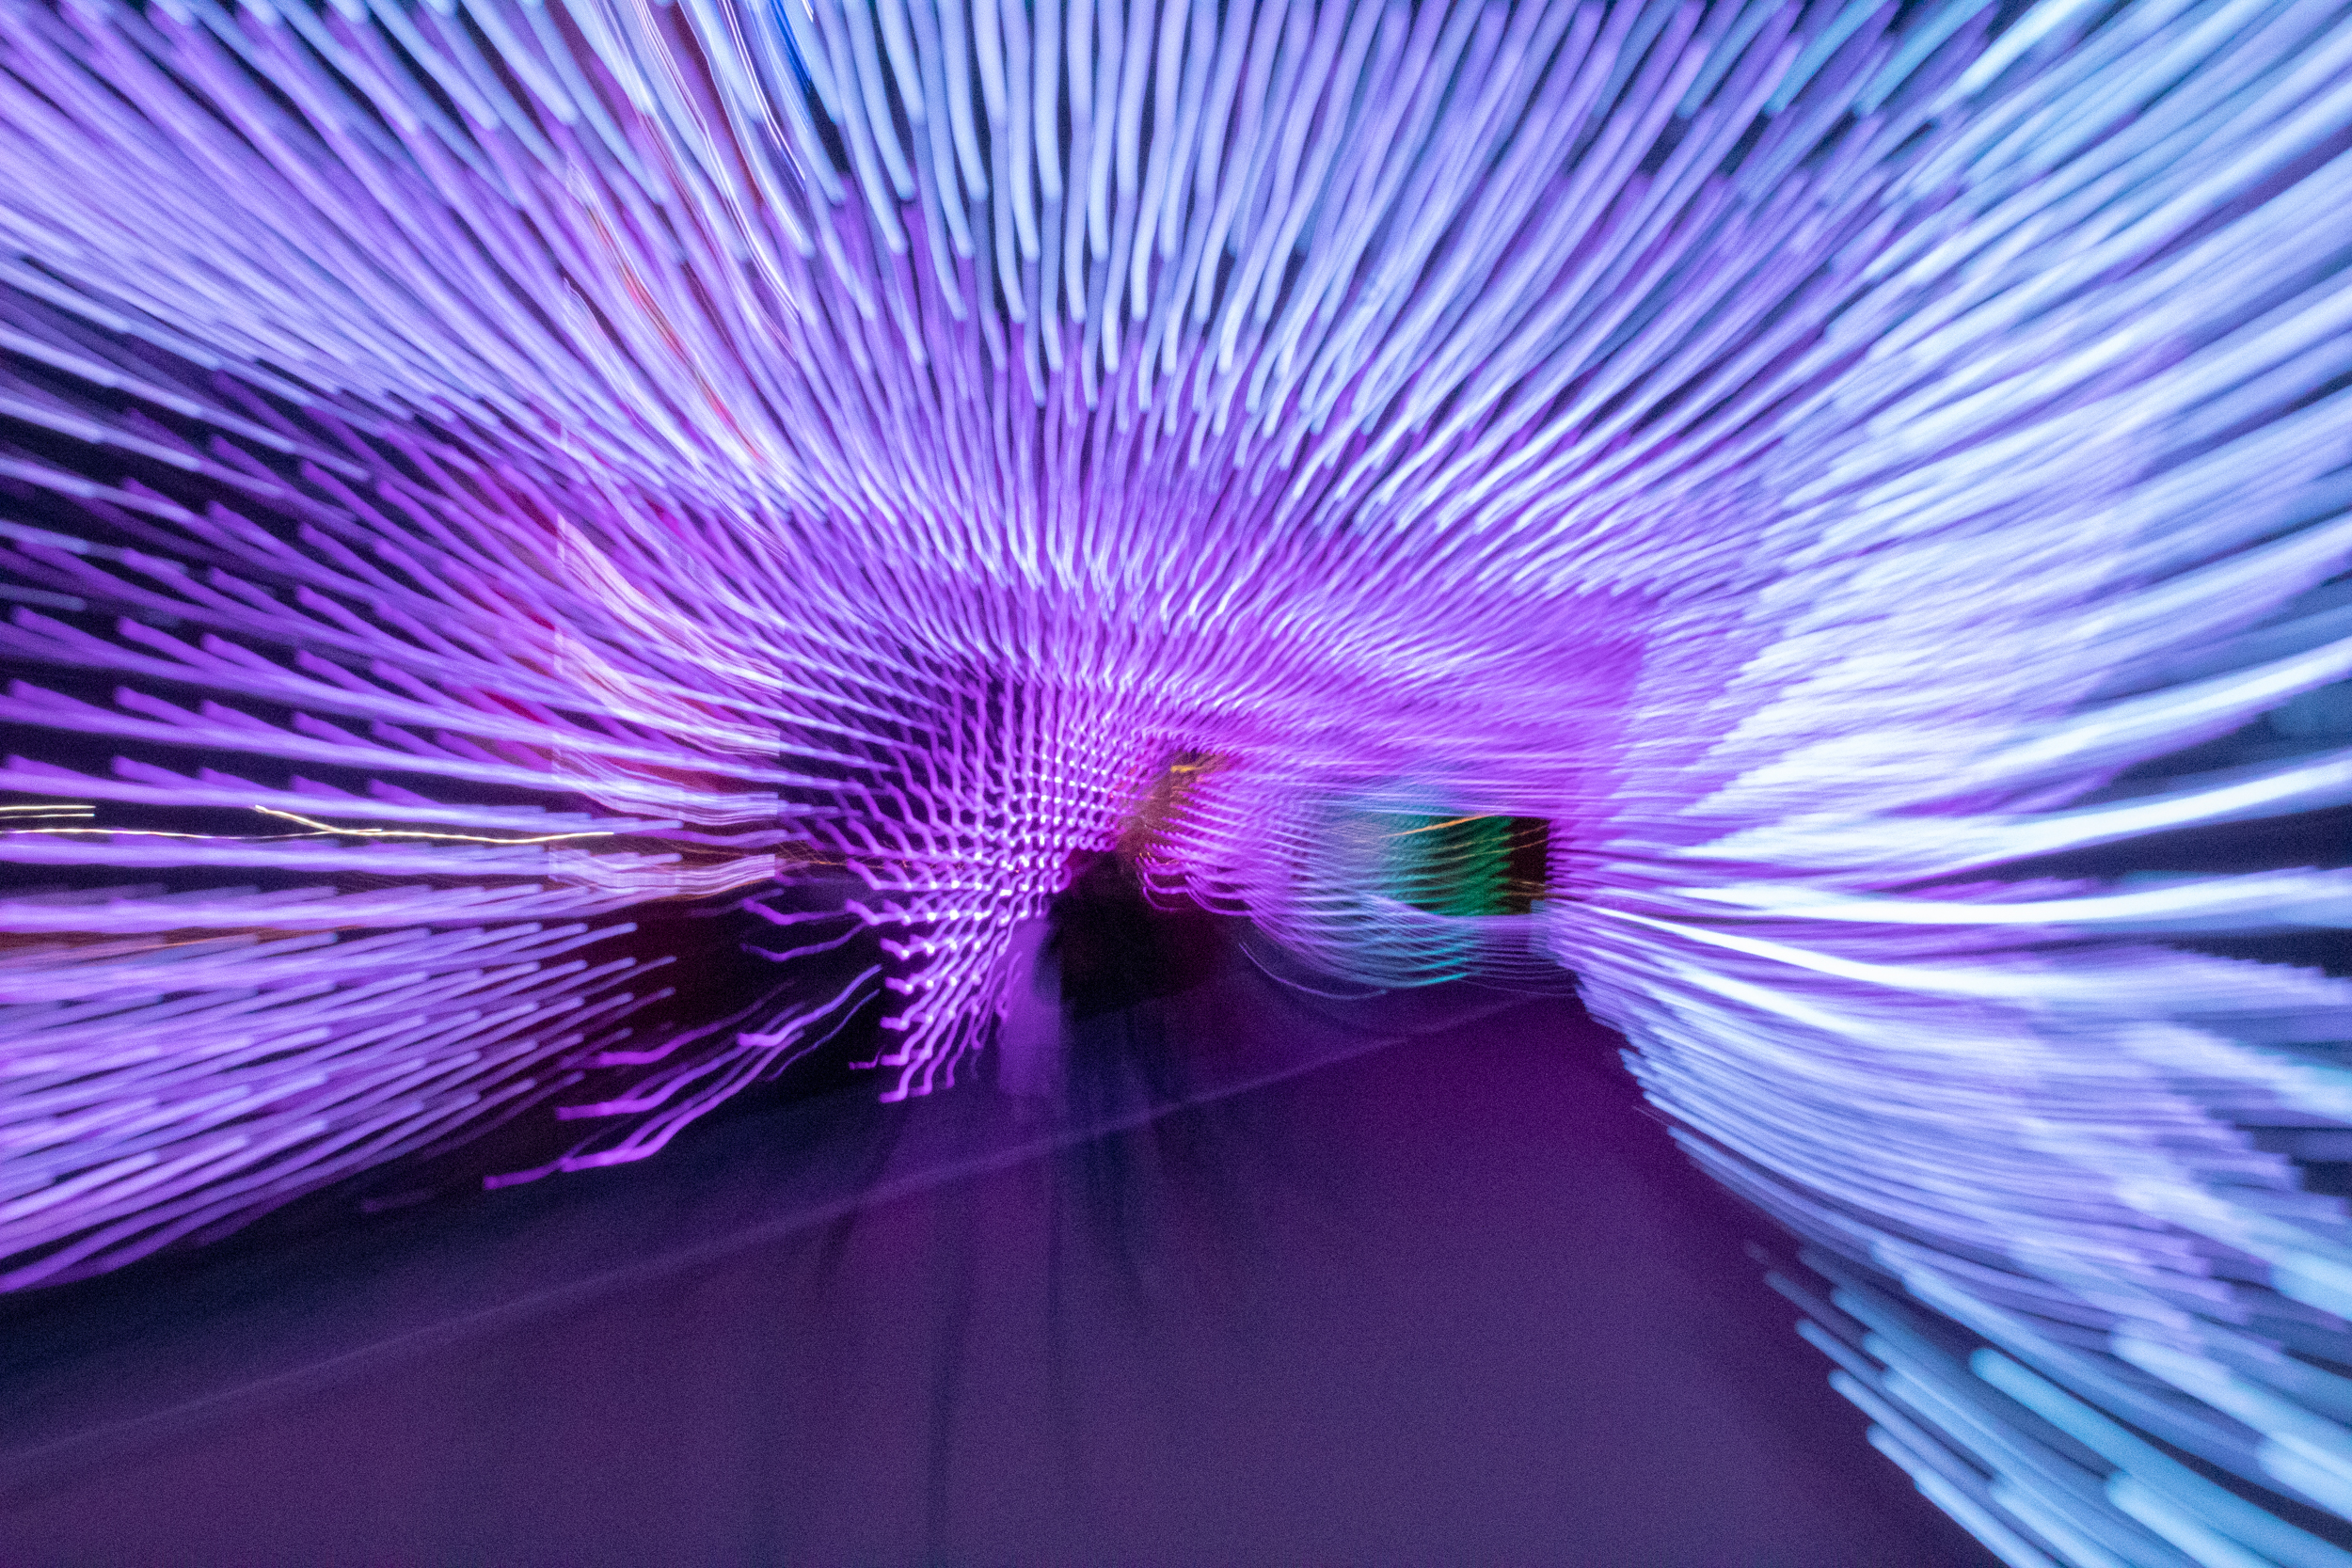 A tunnel full of lights can create motion if you set a low shutter speed and move around.